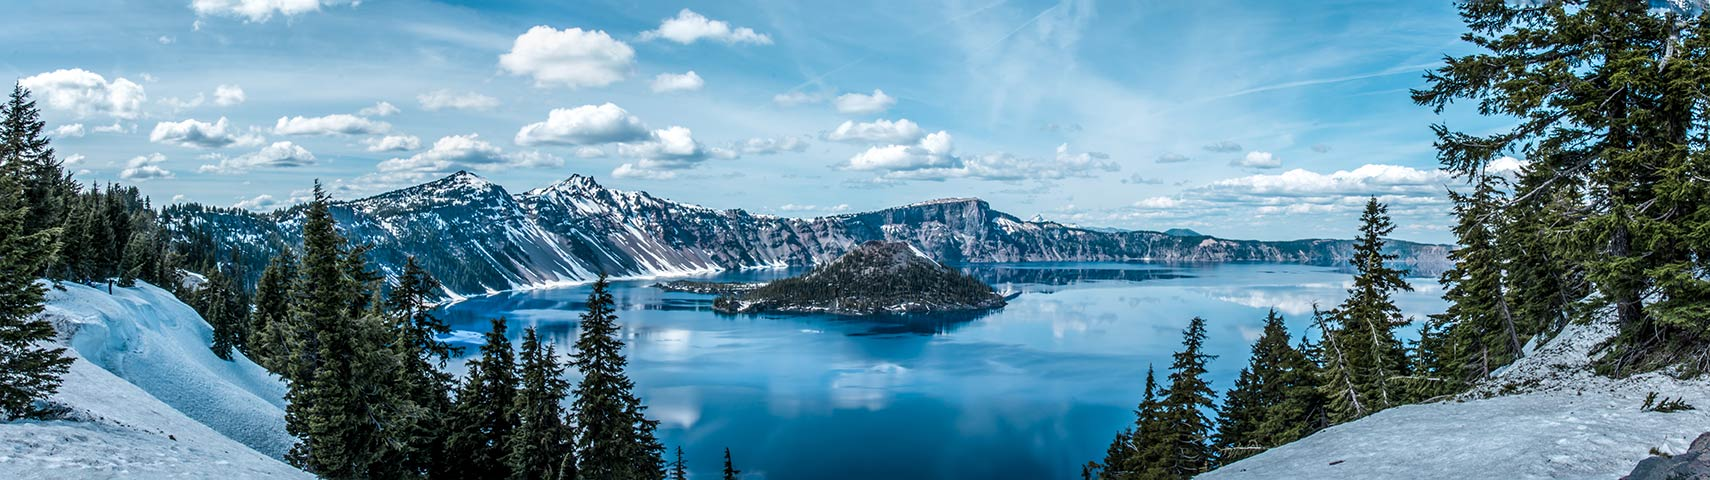 Crater Lake and Wizard Island, Oregon